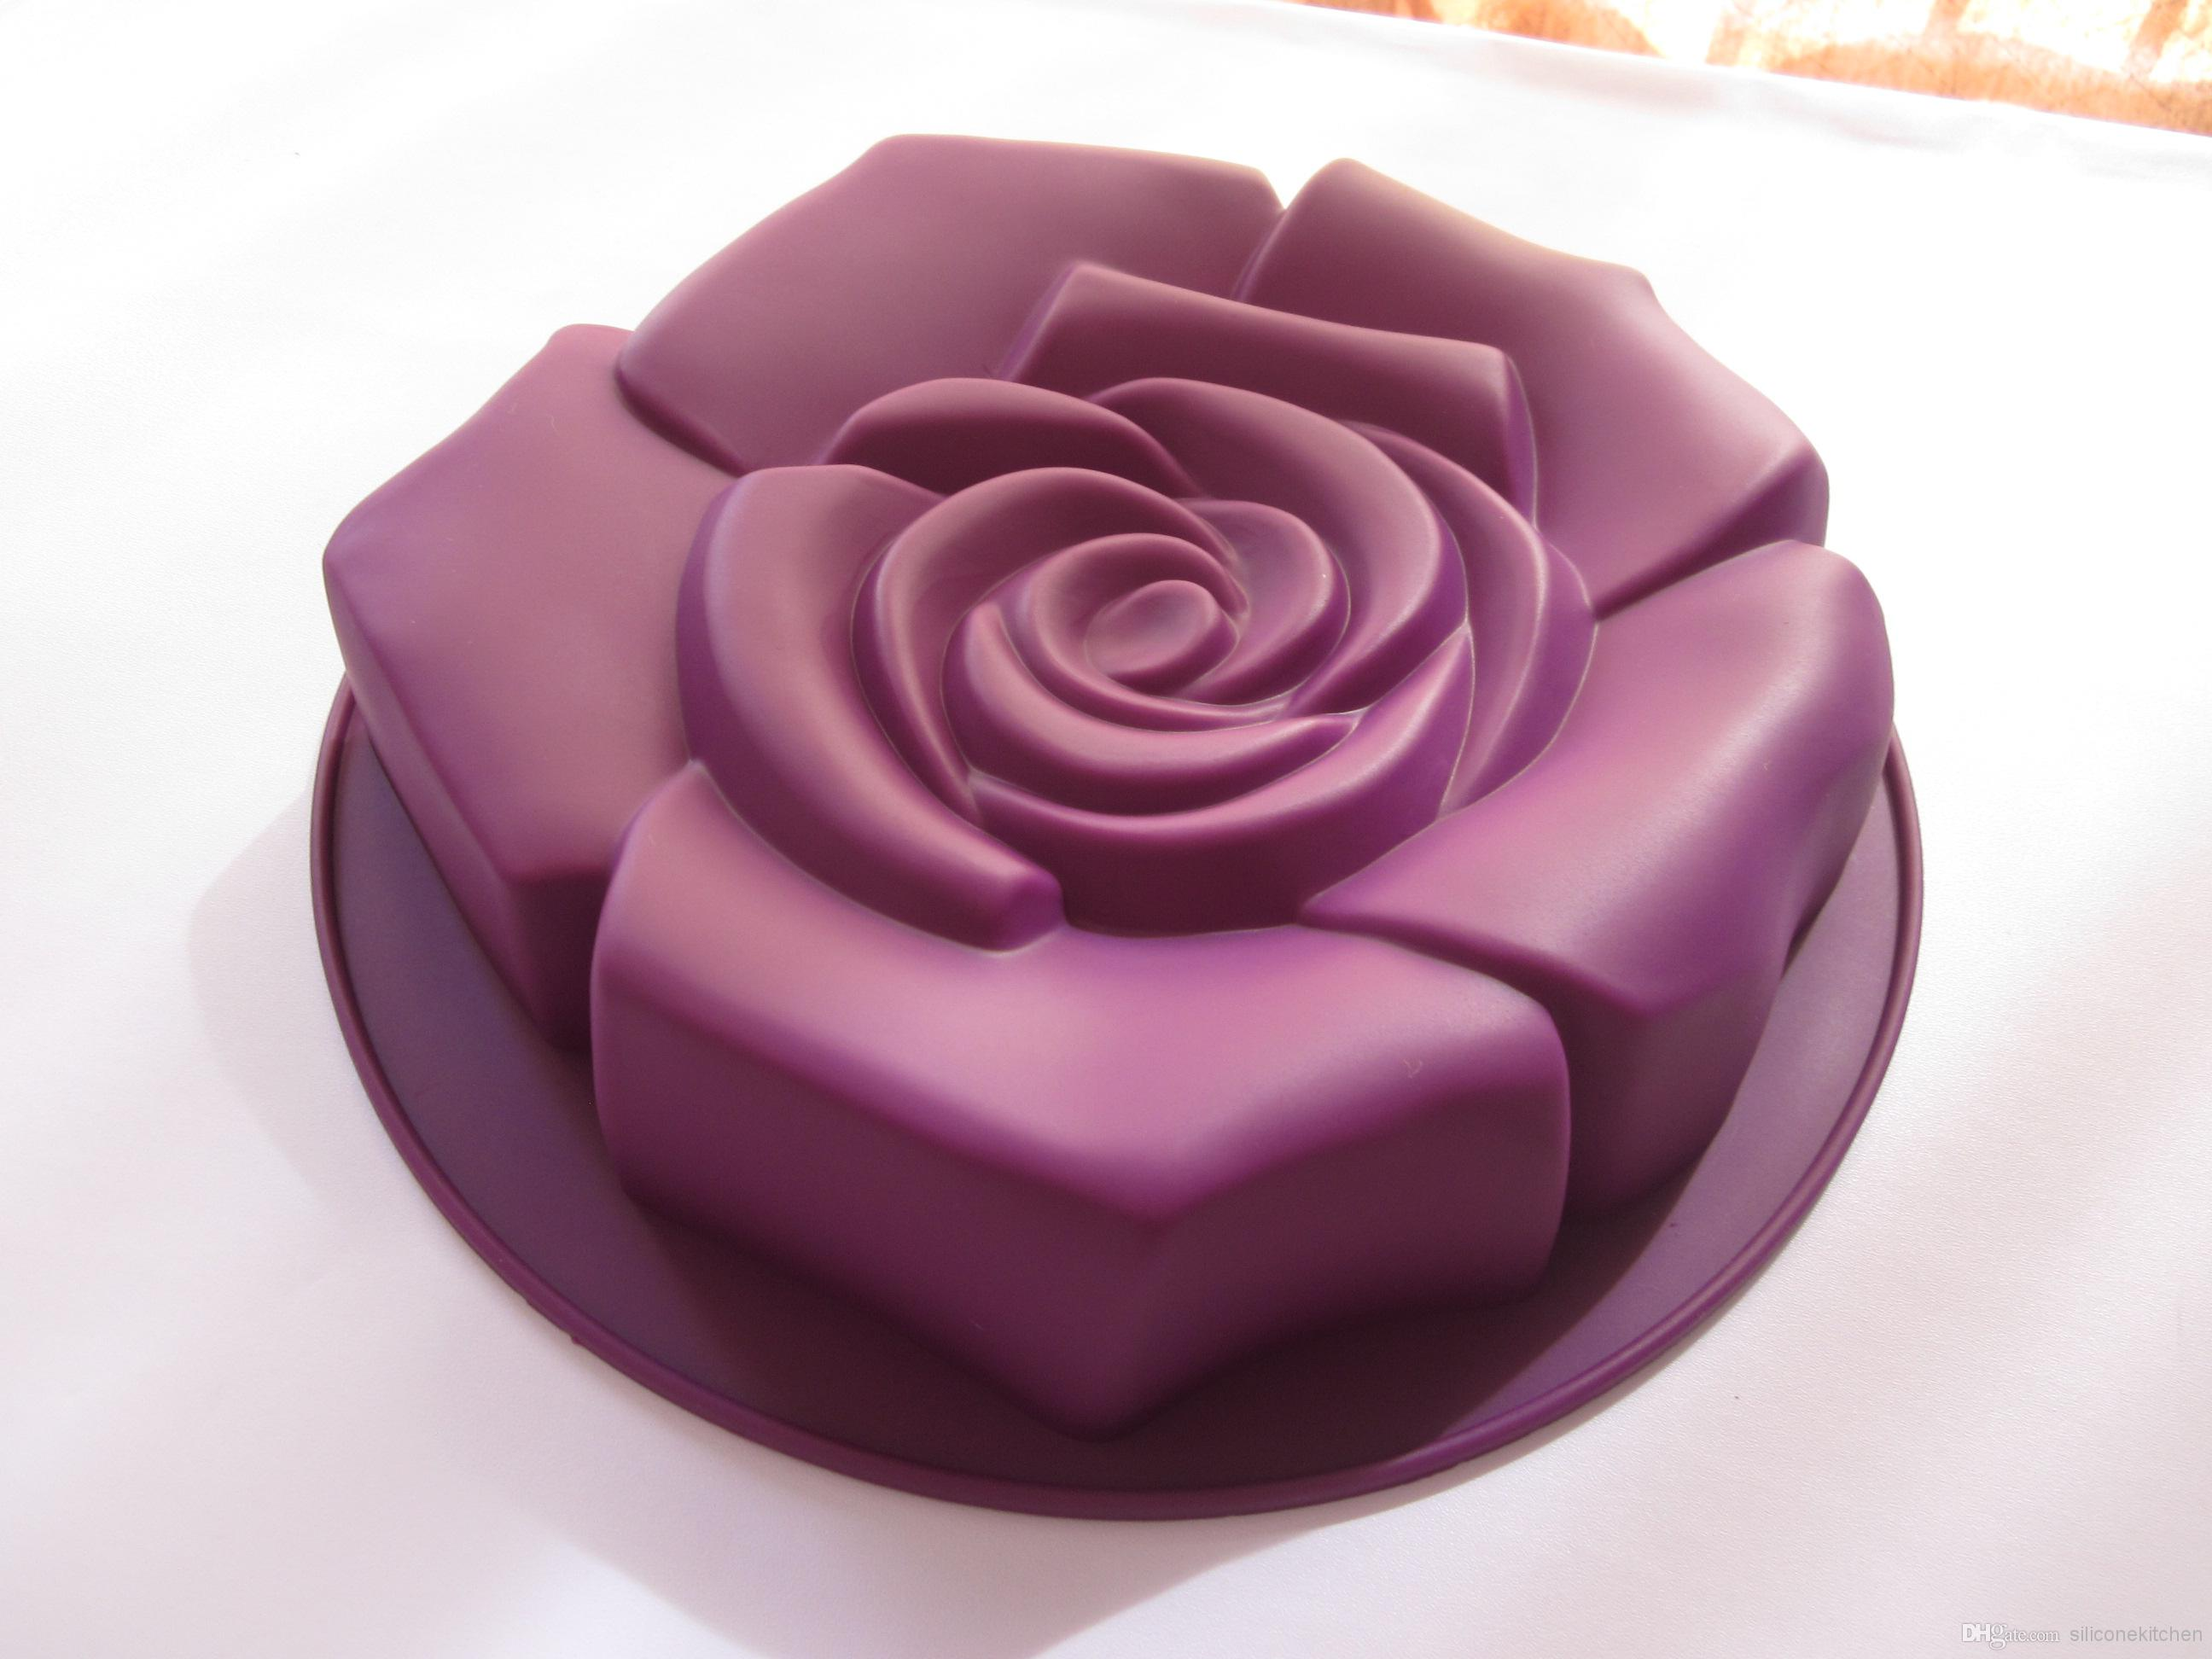 d168ceb32 2 pcs/lot 100% silicone big size rose silicone cake pans,baking pans,cake  mould,bakeware,FDA+free shipping